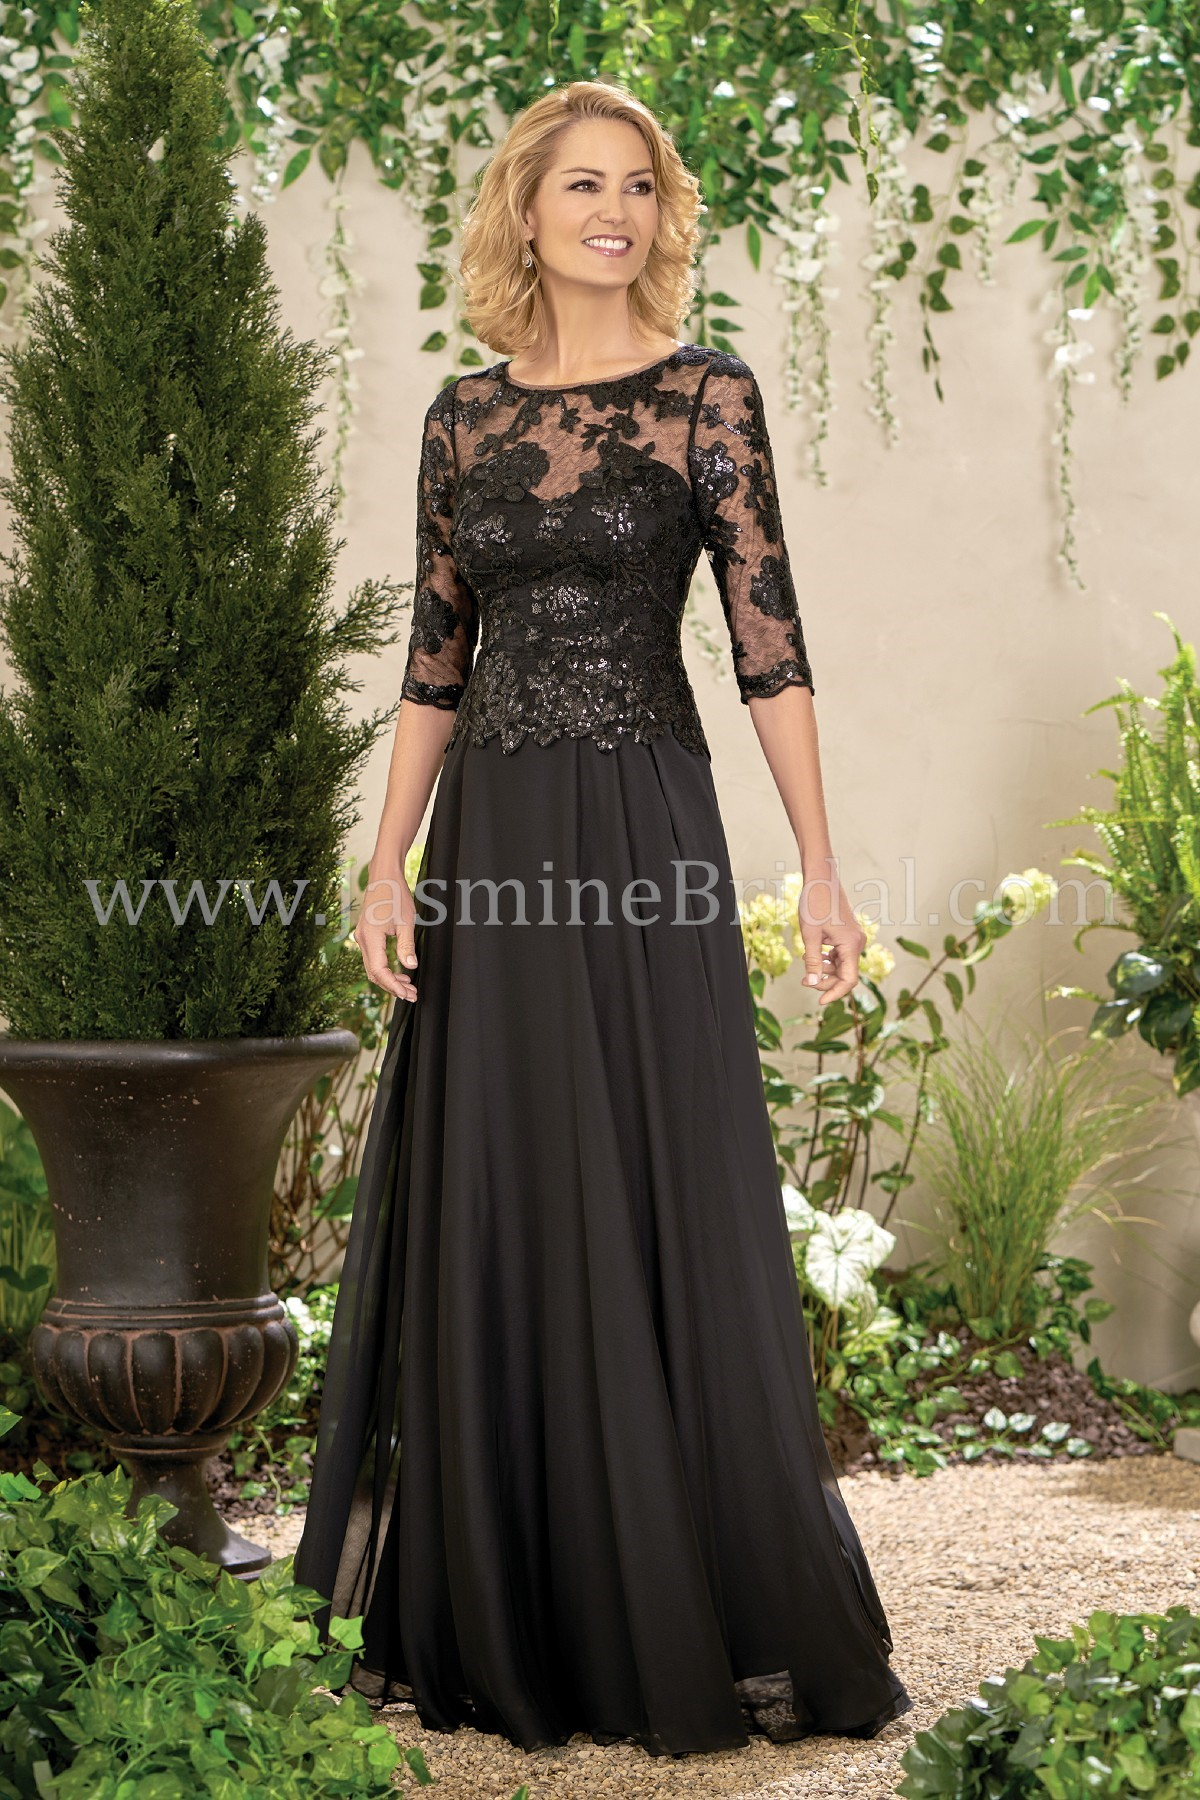 80f7b5a18a Mother Of The Groom Dresses For Winter Wedding - Obamaletter